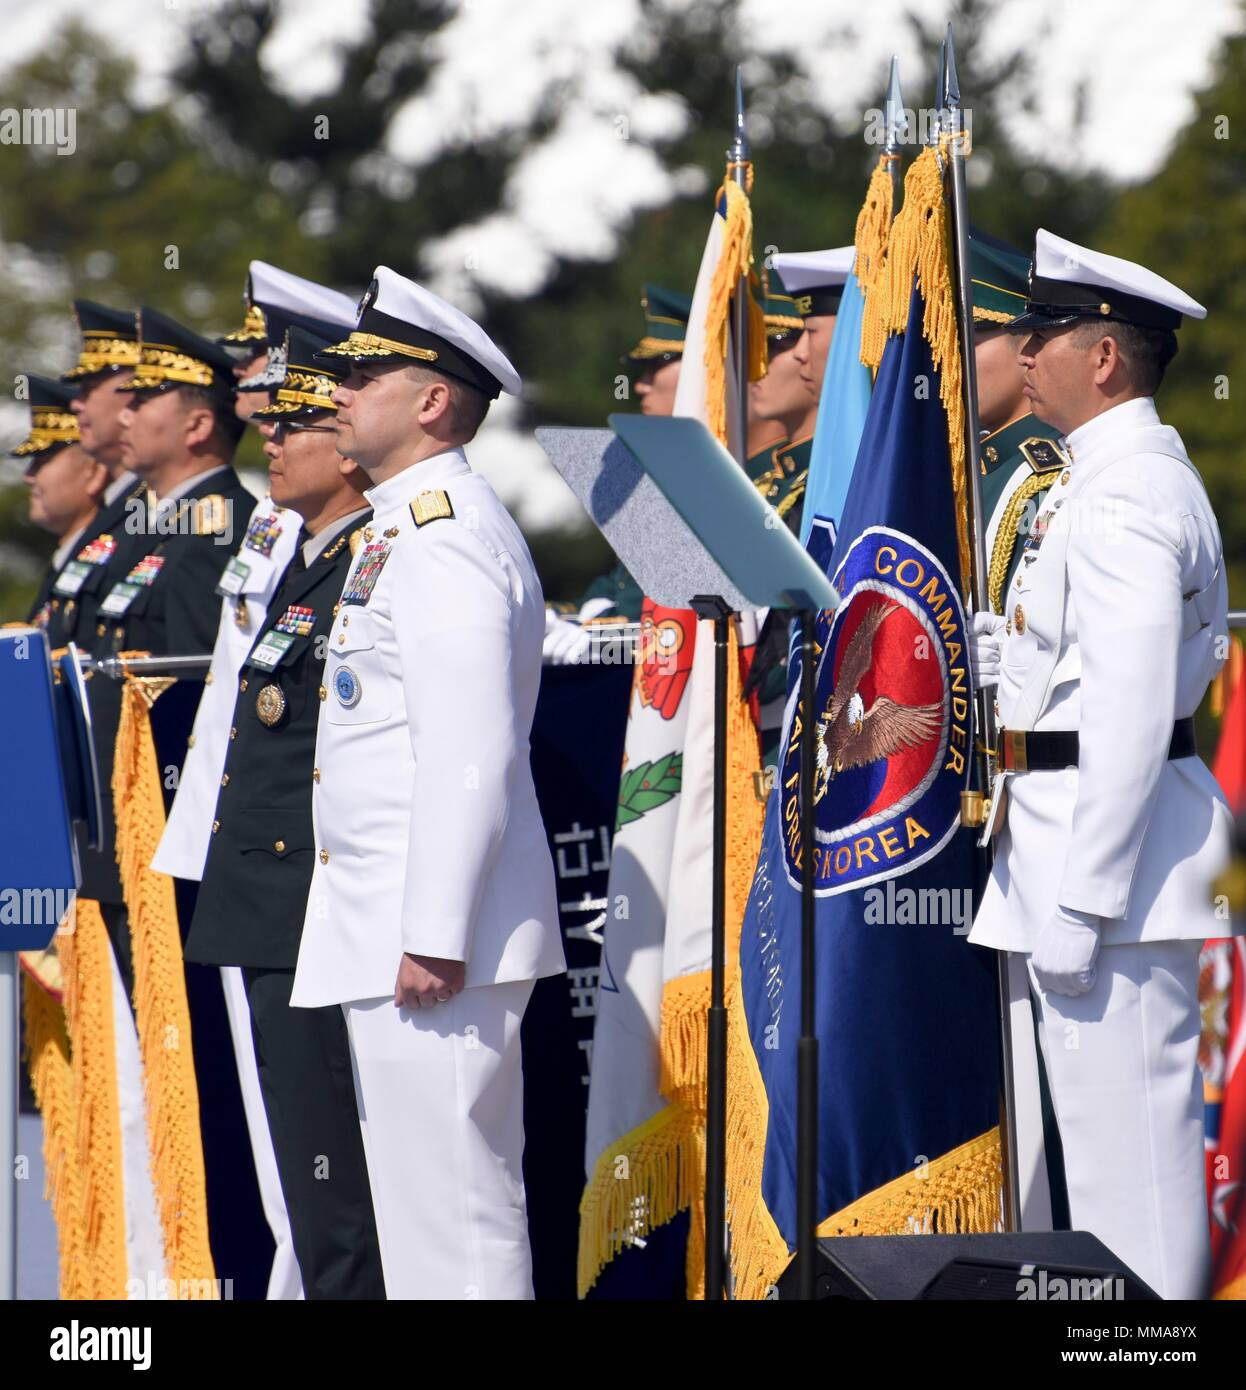 170928-N-TB148-291 PYEONGTAEK, Republic of Korea (Sept. 28, 2017) Republic of Korea (ROK) Rear Adm. Brad Cooper, commander, Naval Forces Korea (CNFK) and Master Chief Chris Stone, CNFK command master chief, stand during the 69th annual ROK Armed Forces Day Ceremony. Armed Forces Day comemmorates the service of men and women in the ROK armed forces, the day that South Korea broke through the 38th parallel during the Korean War in 1950. Cooper is also presented the Presidential Unit Citation by ROK President Moon, Jae-in, this is the first time a U.S. Navy command is presented this award since t Stock Photo